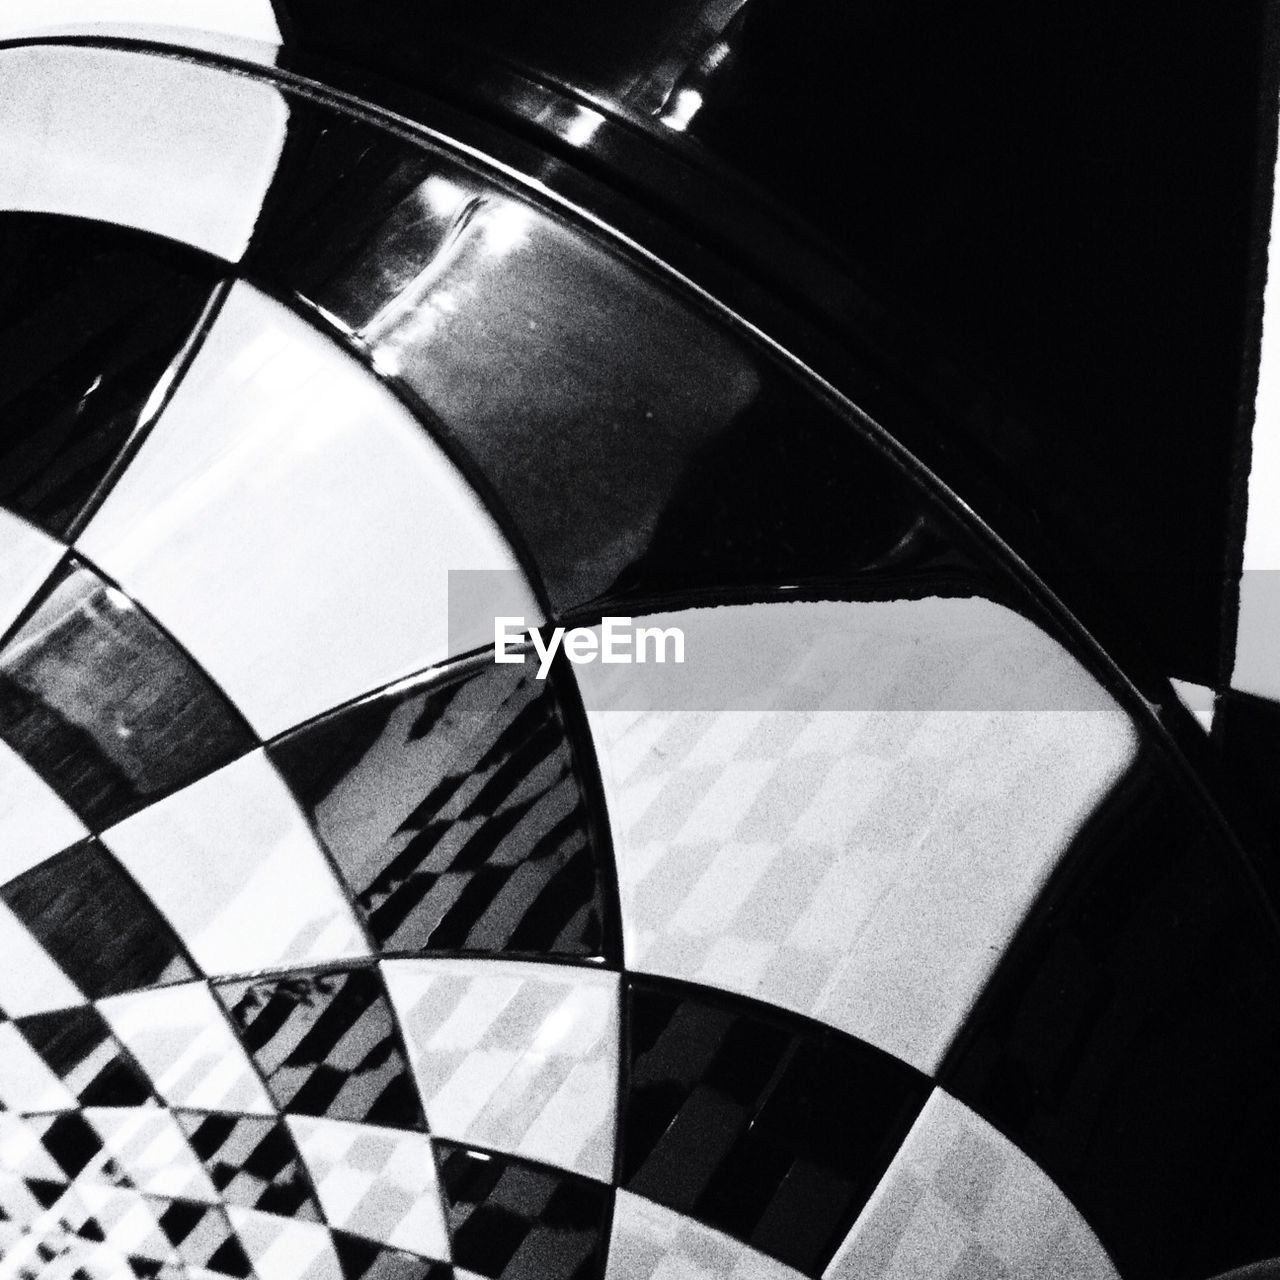 Detail shot of chequered floor